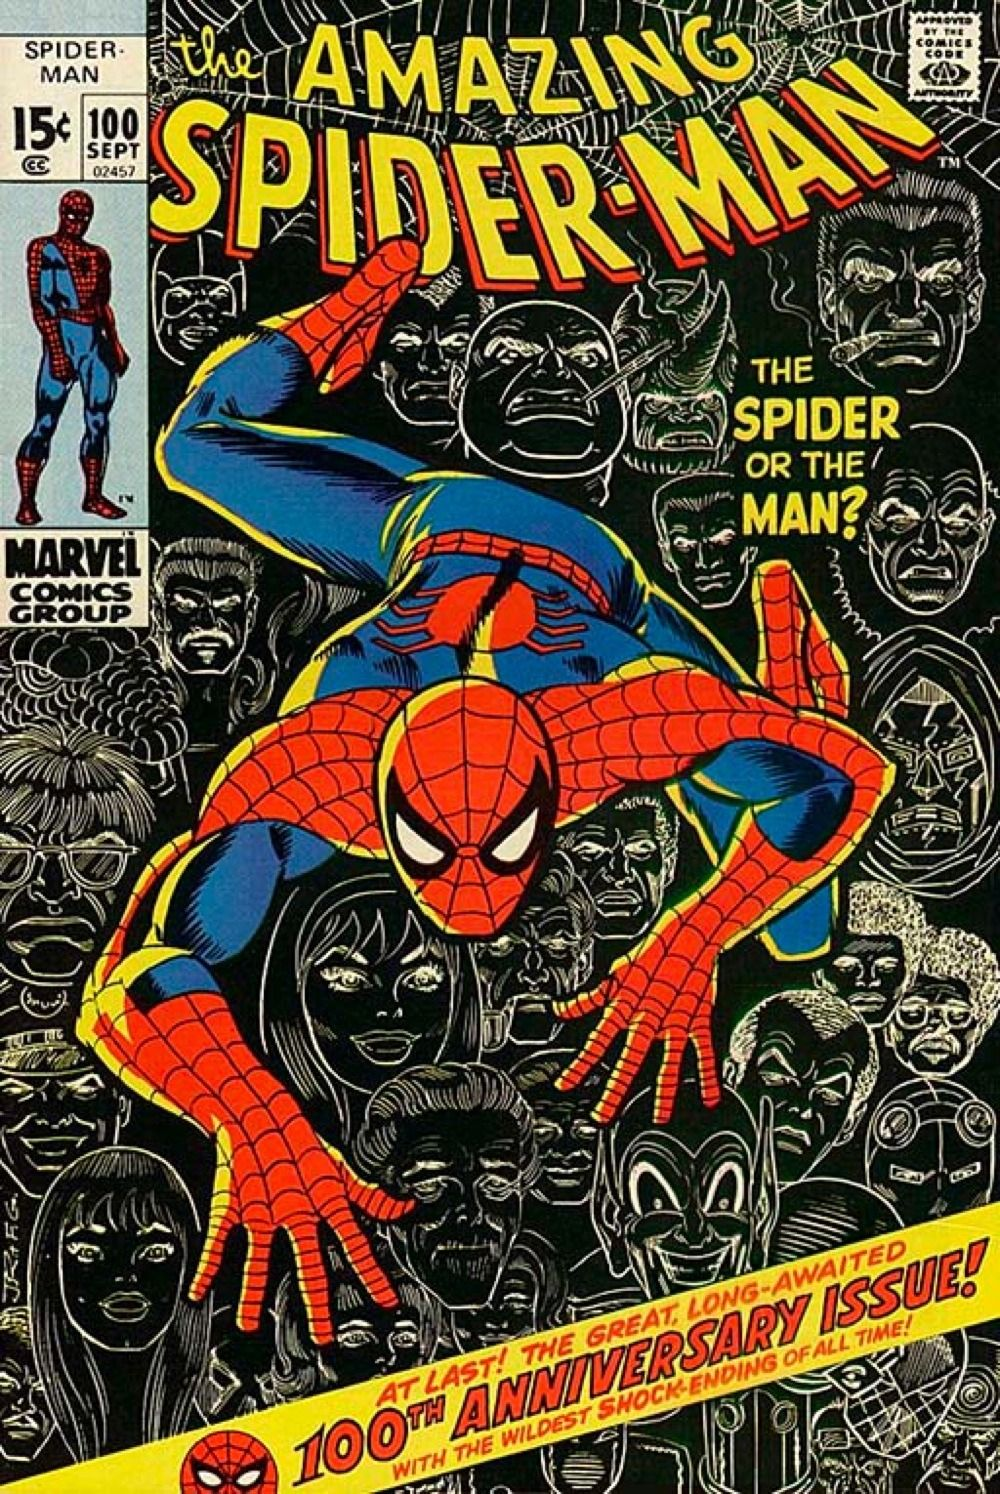 The Amazing Spider Man 100 200 300 400 500 600 700 Covers By Respectively Gil Kan Amazing Spider Man Comic Spiderman Comic Marvel Comics Vintage